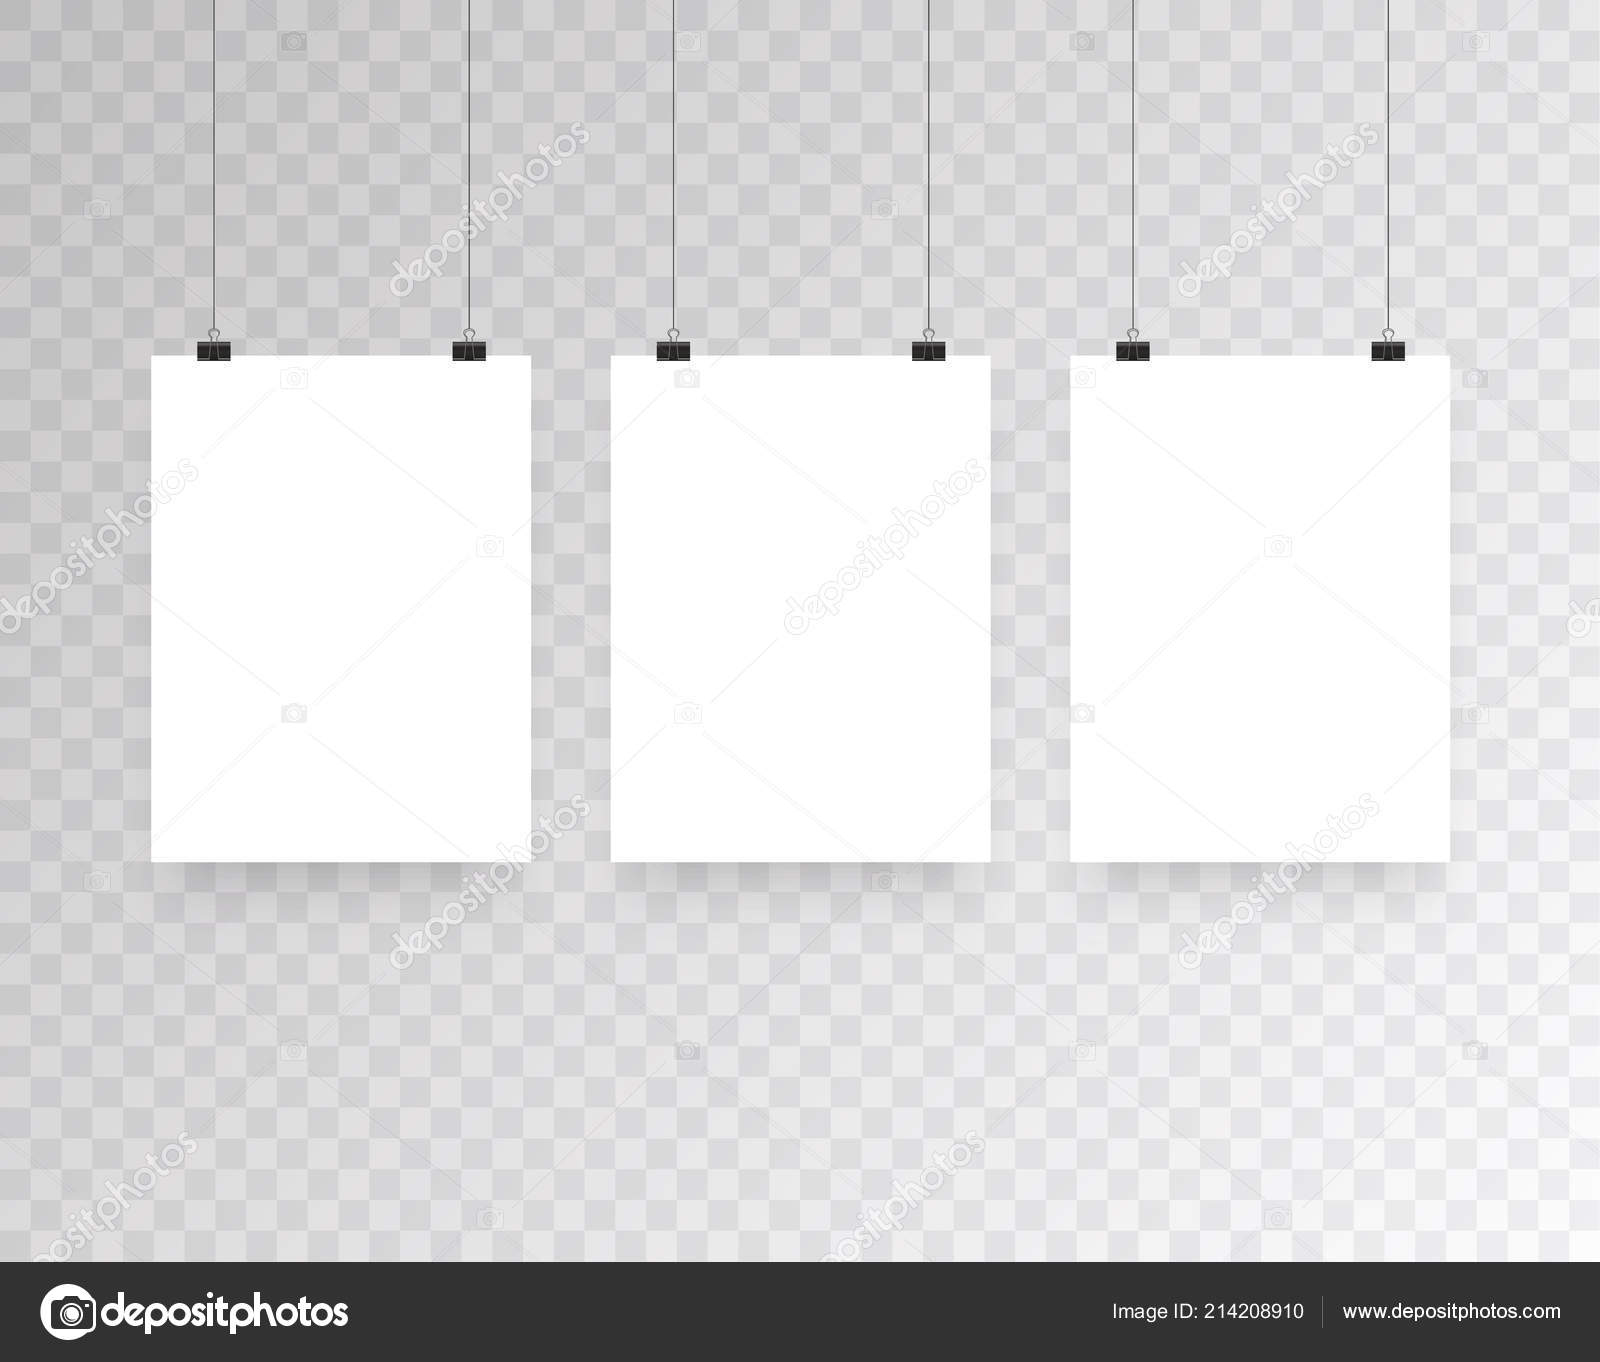 Blank Hanging Photo Frames Or Poster Templates Isolated On Transparent Background Photo Picture Hanging Frame Paper Gallery Portfolio Illustration Vector Stock Vector C Sergii19 I Ua 214208910